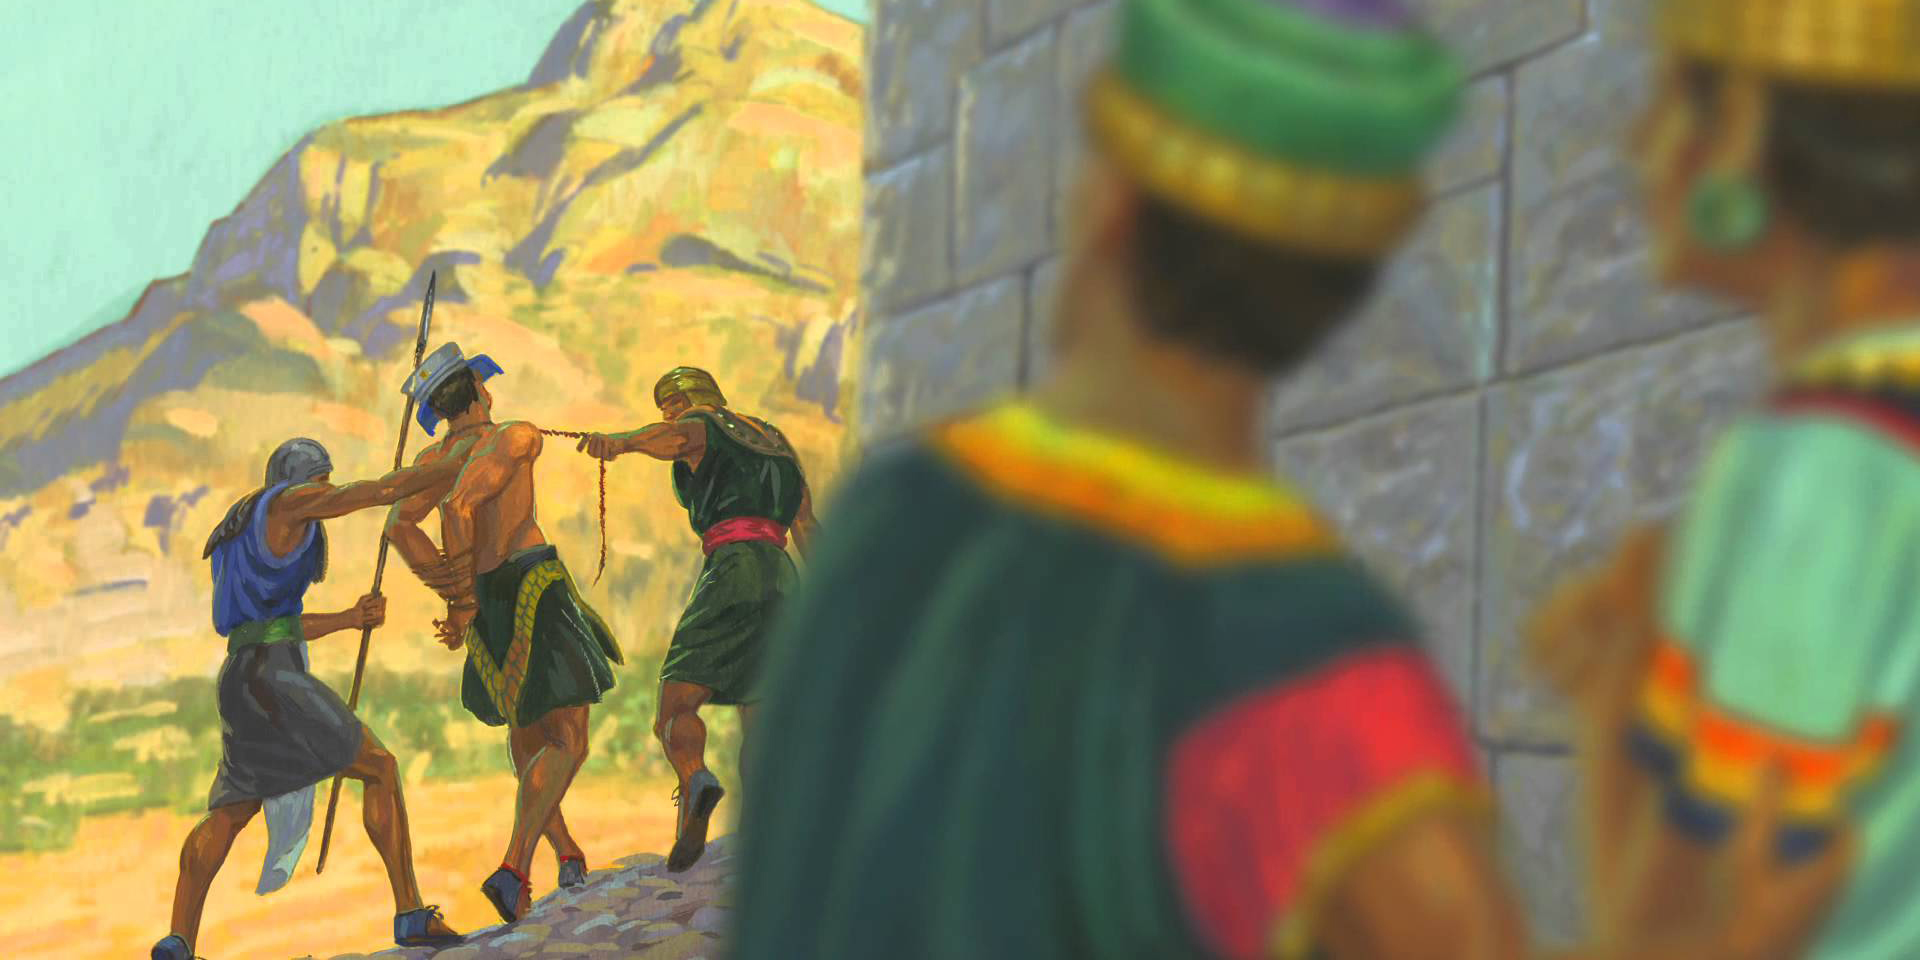 The execution of Nehor. Image via lds.org.